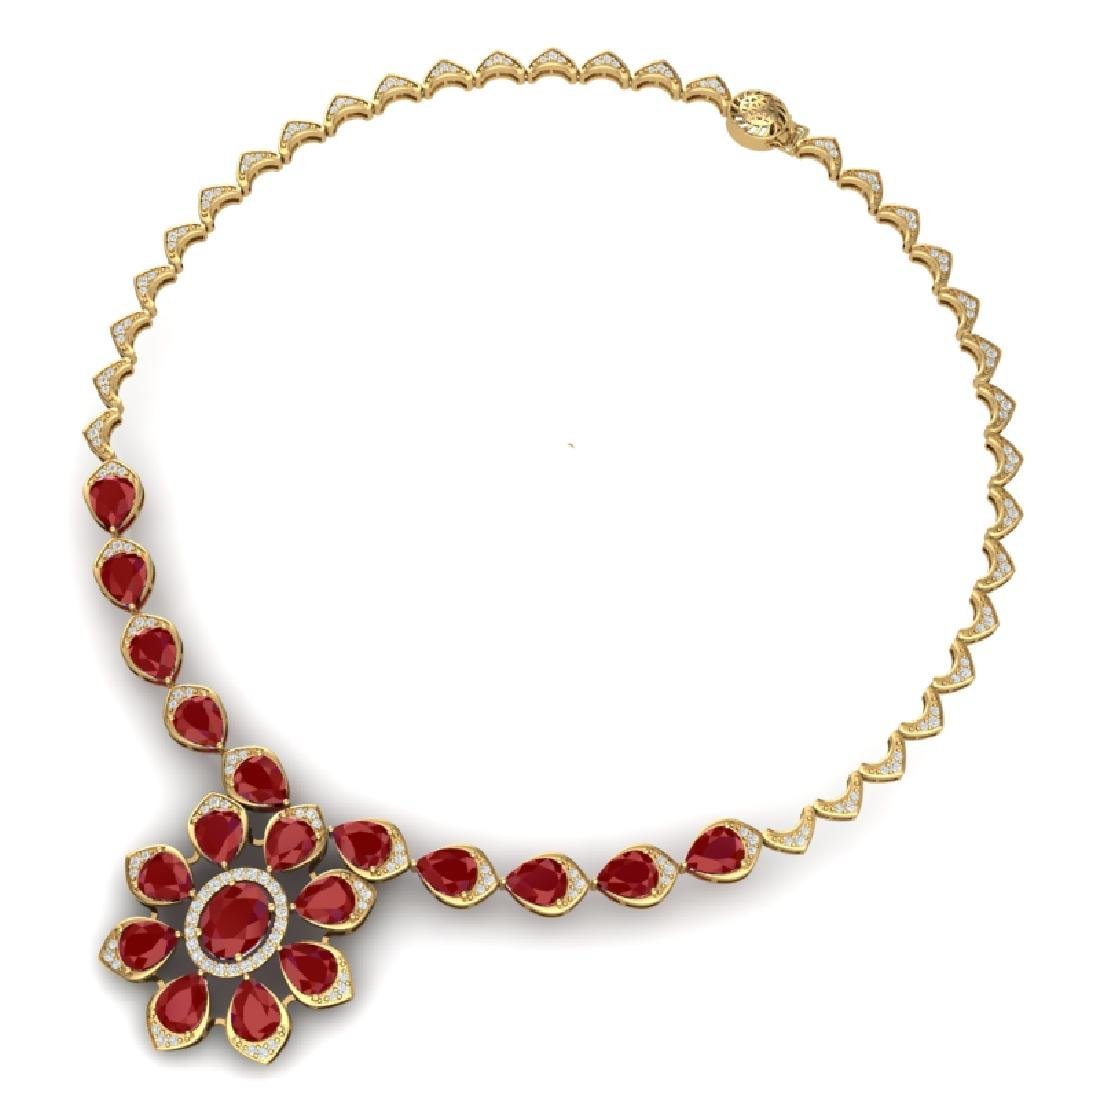 30.70 CTW Royalty Ruby & VS Diamond Necklace 18K Yellow - 2